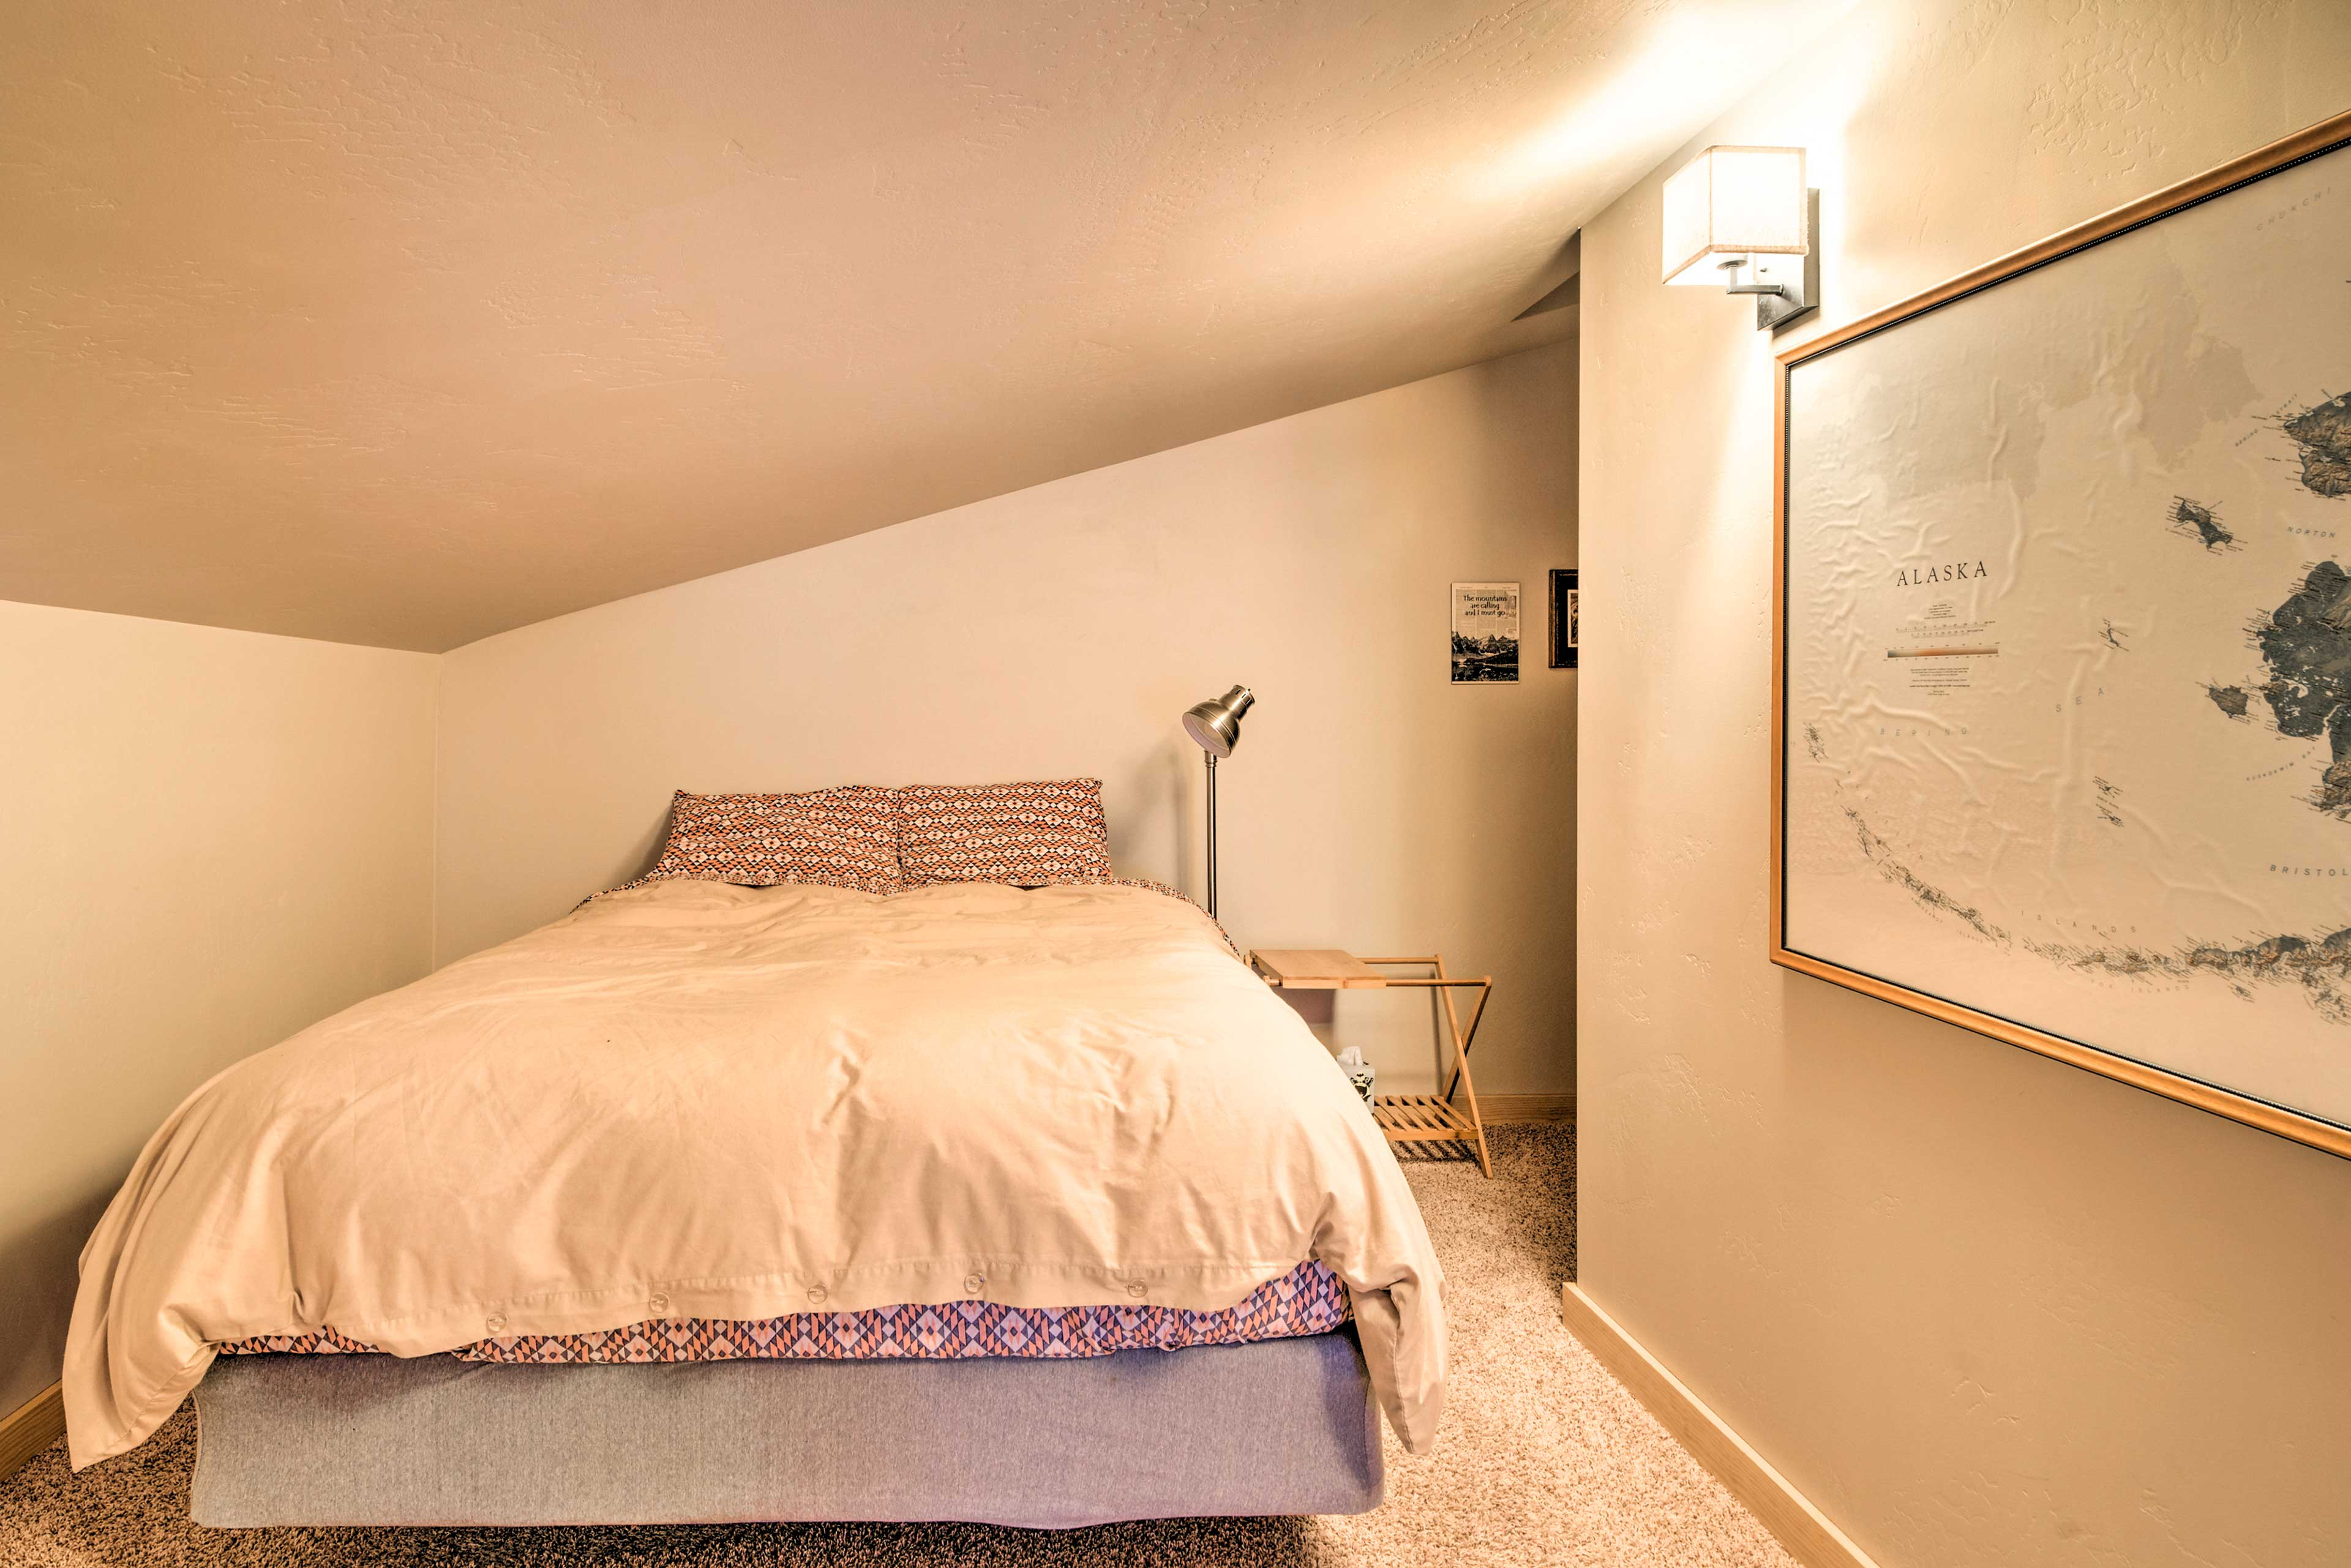 Take a bear nap in the loft's queen bed.